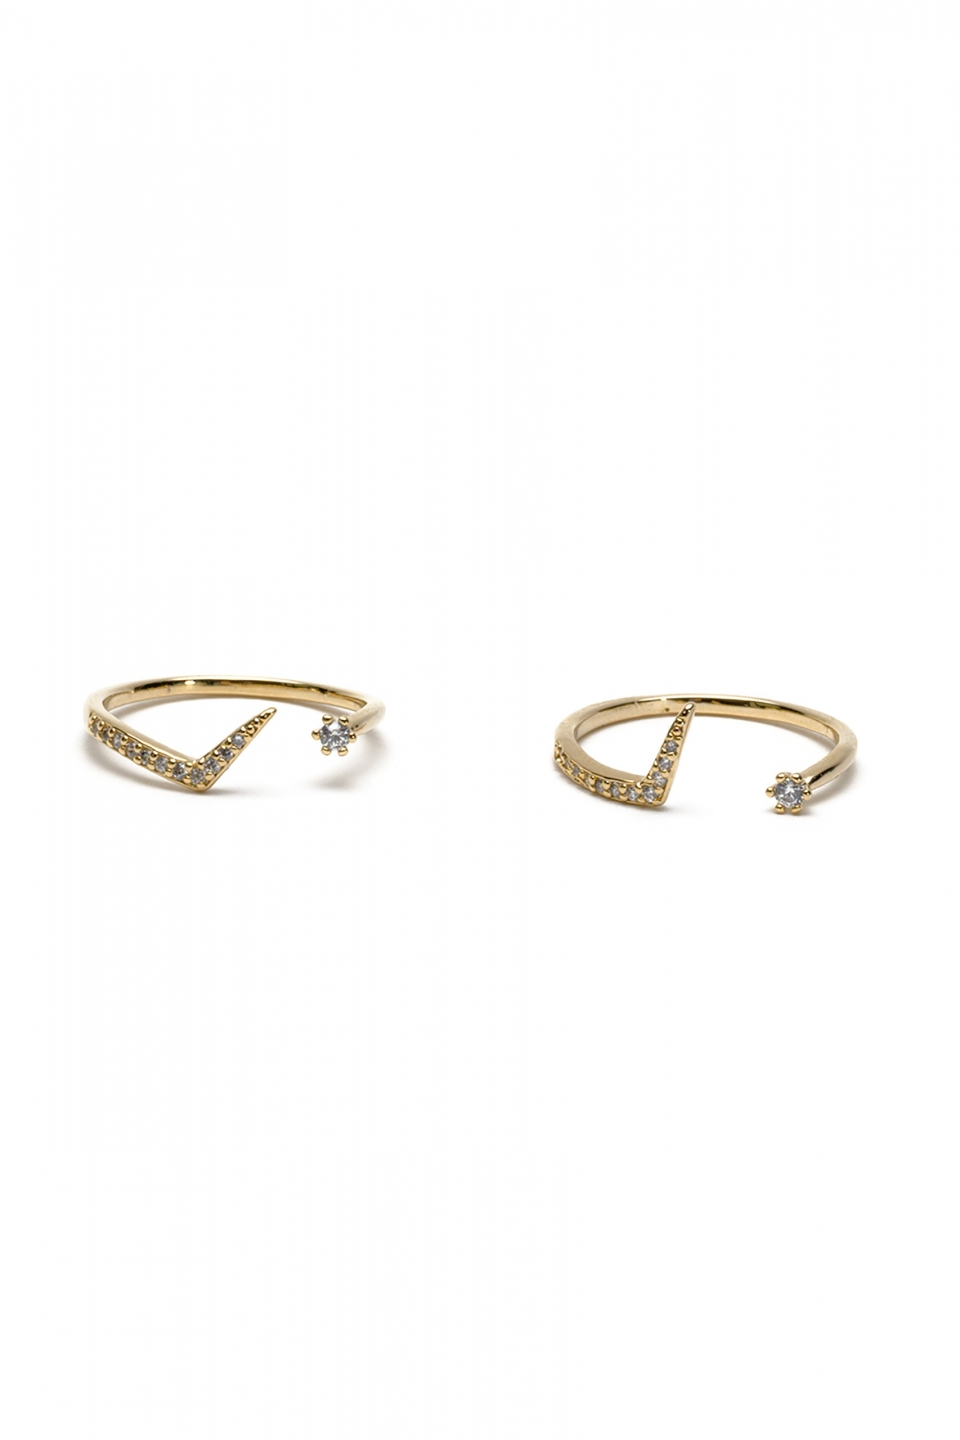 Marta Gold Ring Duo